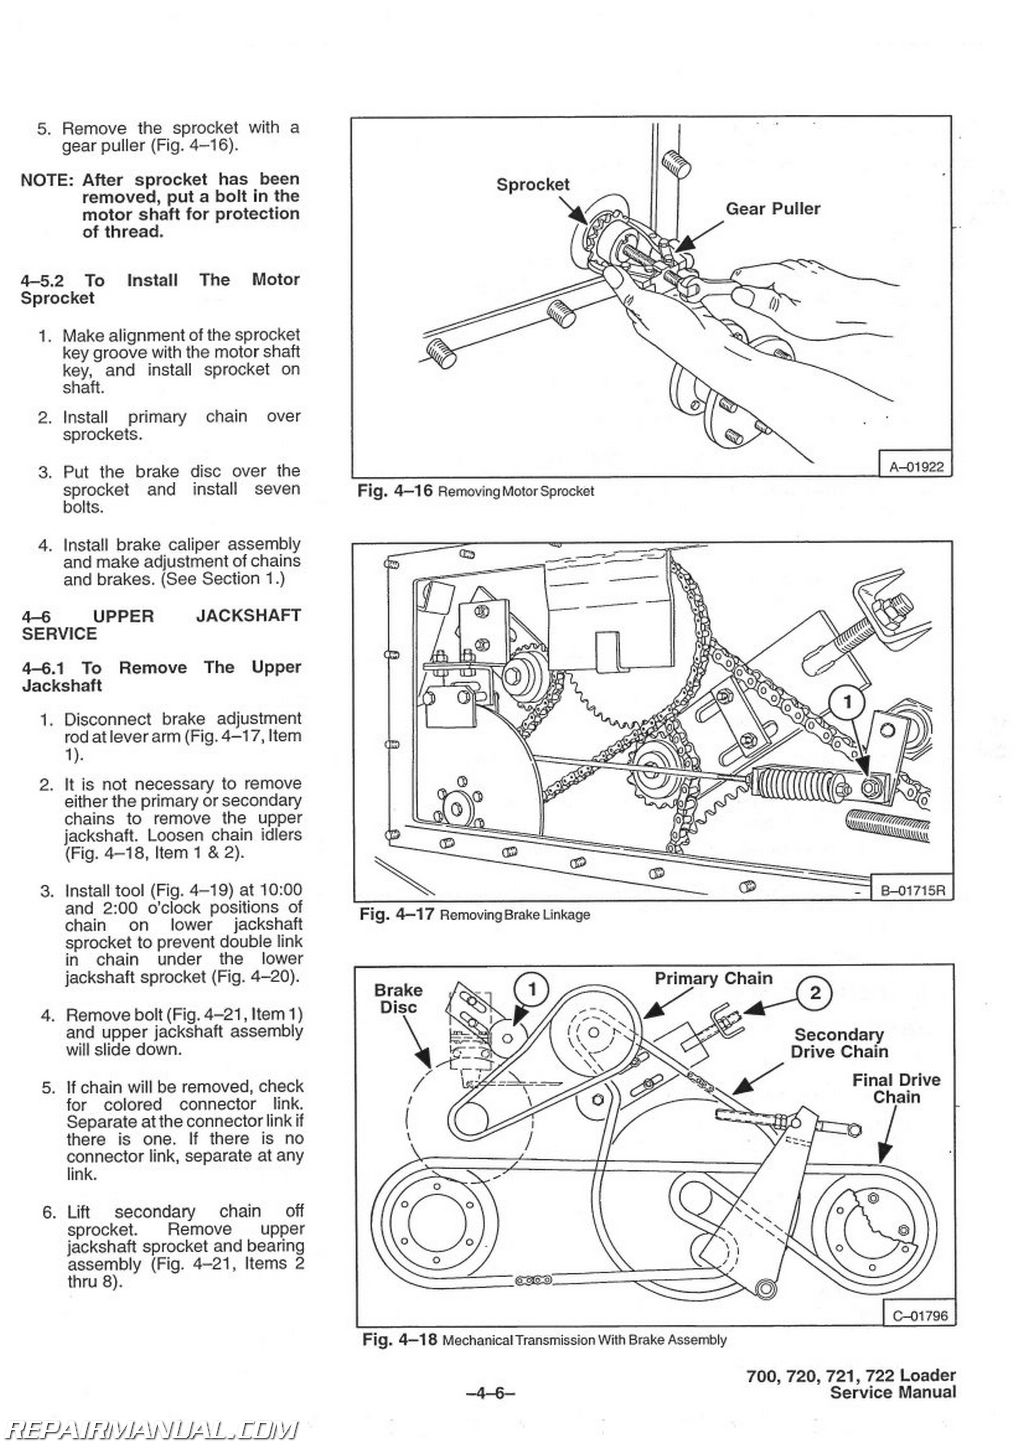 bobcat 700 720 721 722 skid steer service manual Bobcat 873 Parts Diagram Bobcat 873 Parts Diagram #54 bobcat 873 parts diagram